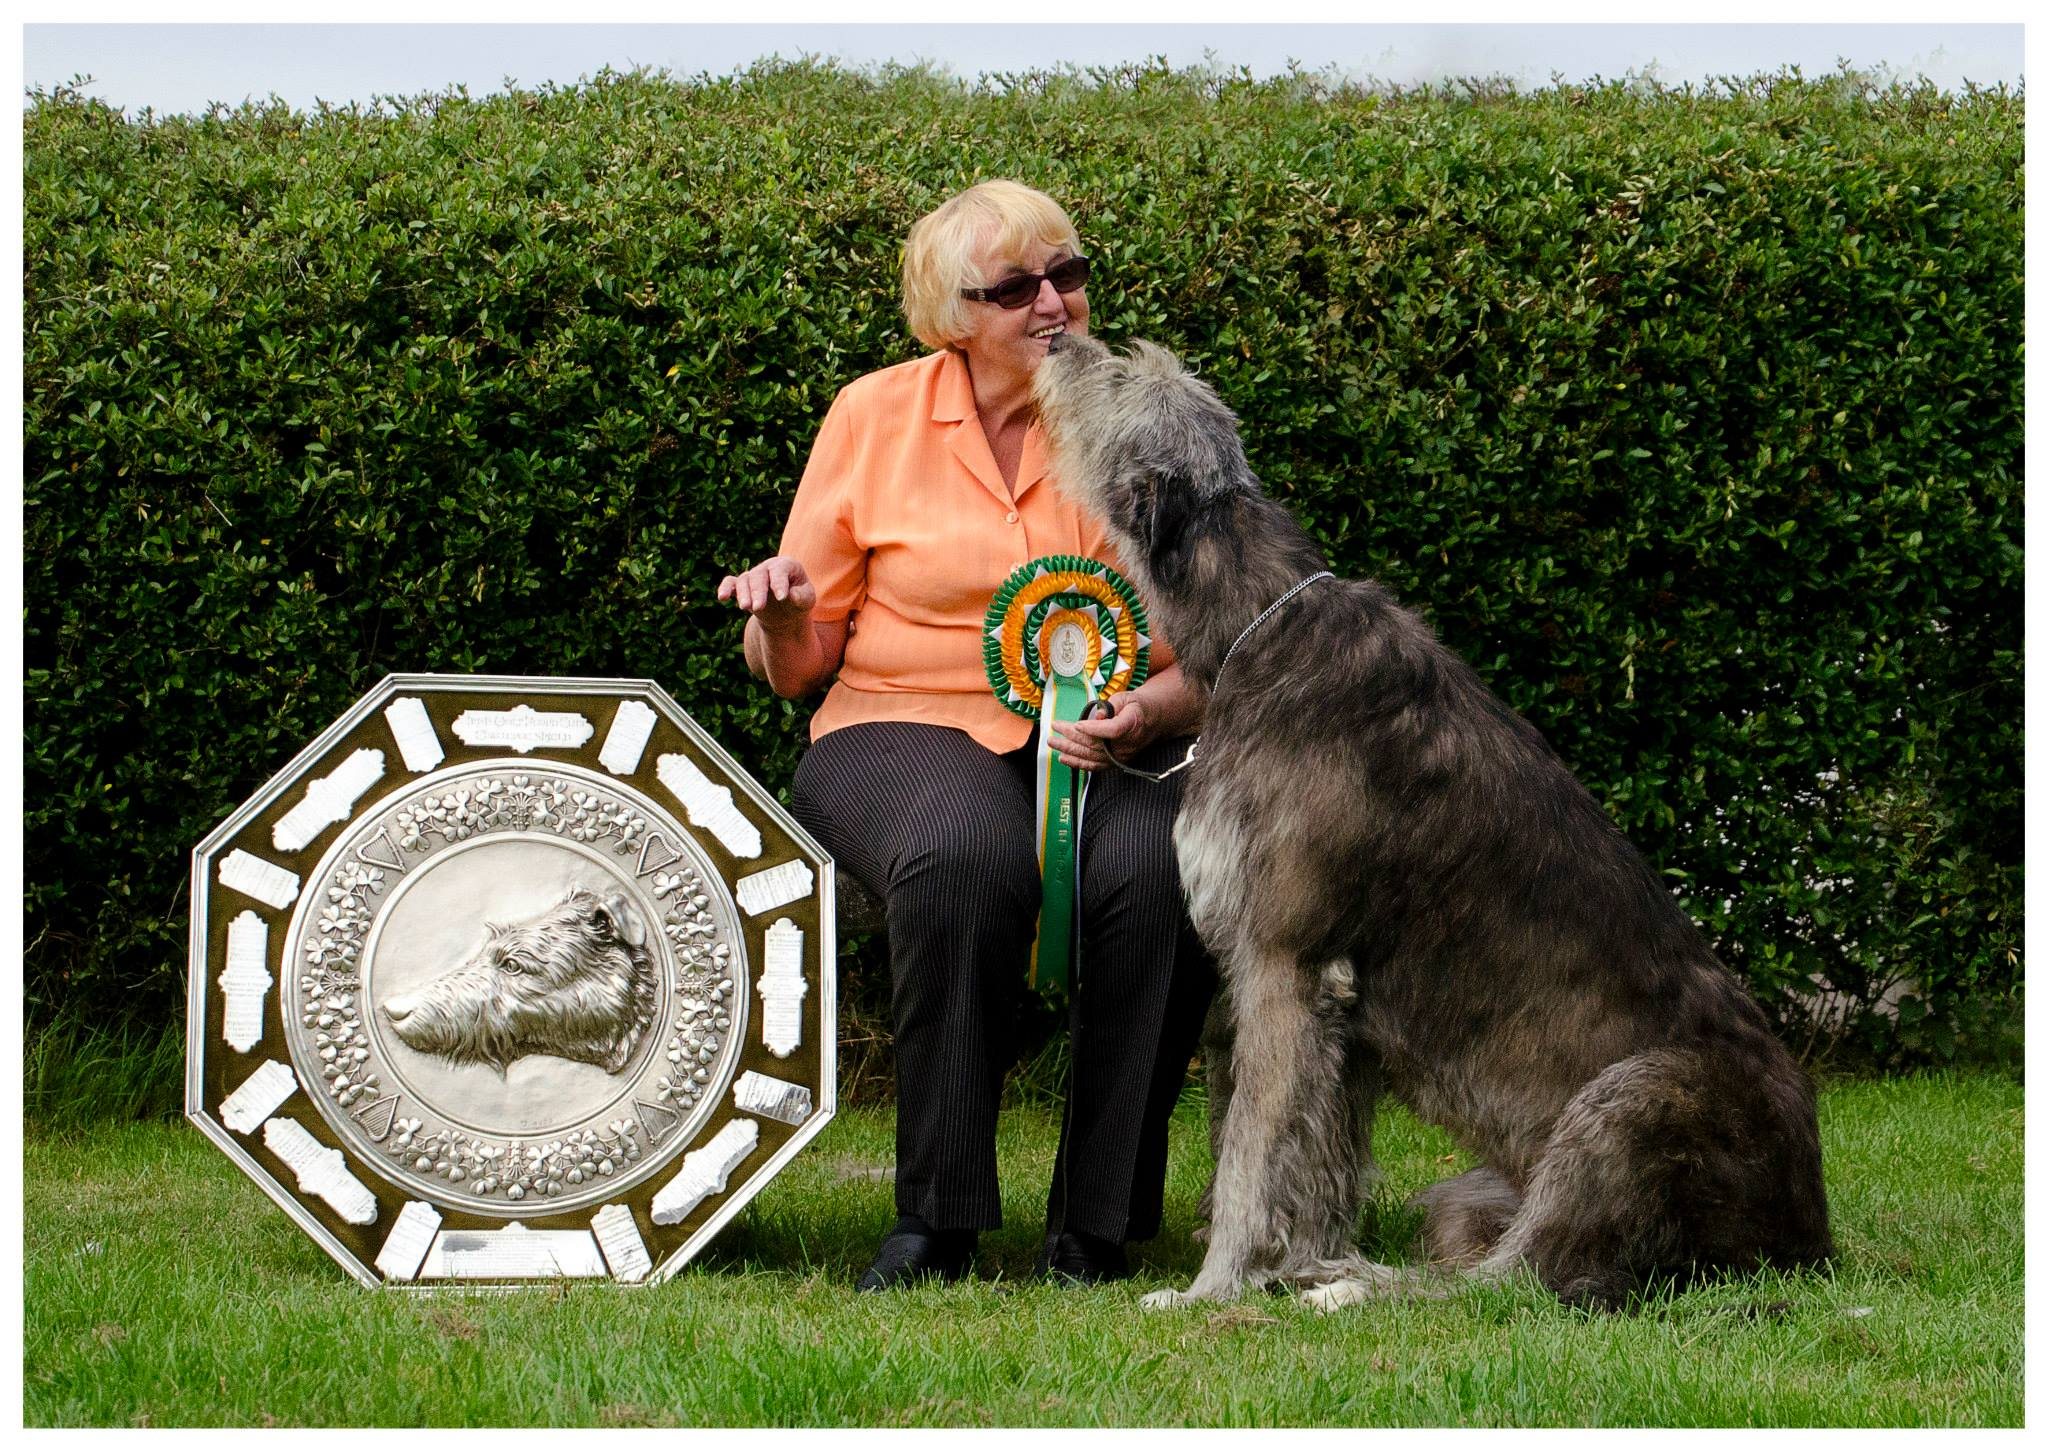 CH. Nellwyns Miss Pollyanna and Kathy - with the Graham Shield for winning Best in Show at the Irish Wolfhound Club Championship Show